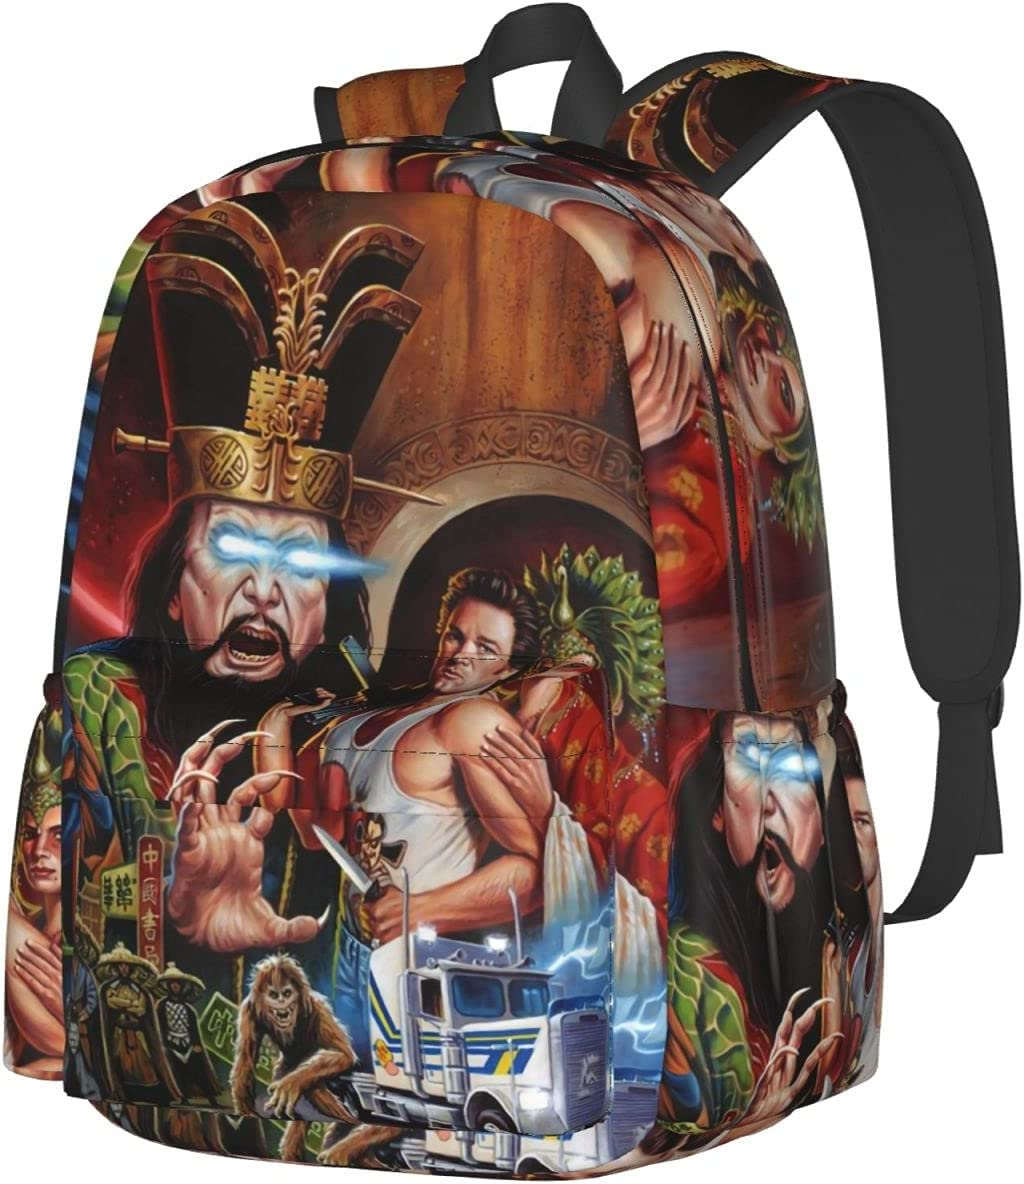 AnimeBig Trouble Atlanta Mall in Little Max 75% OFF Chi-na fashion Backpack Sweet Backpac